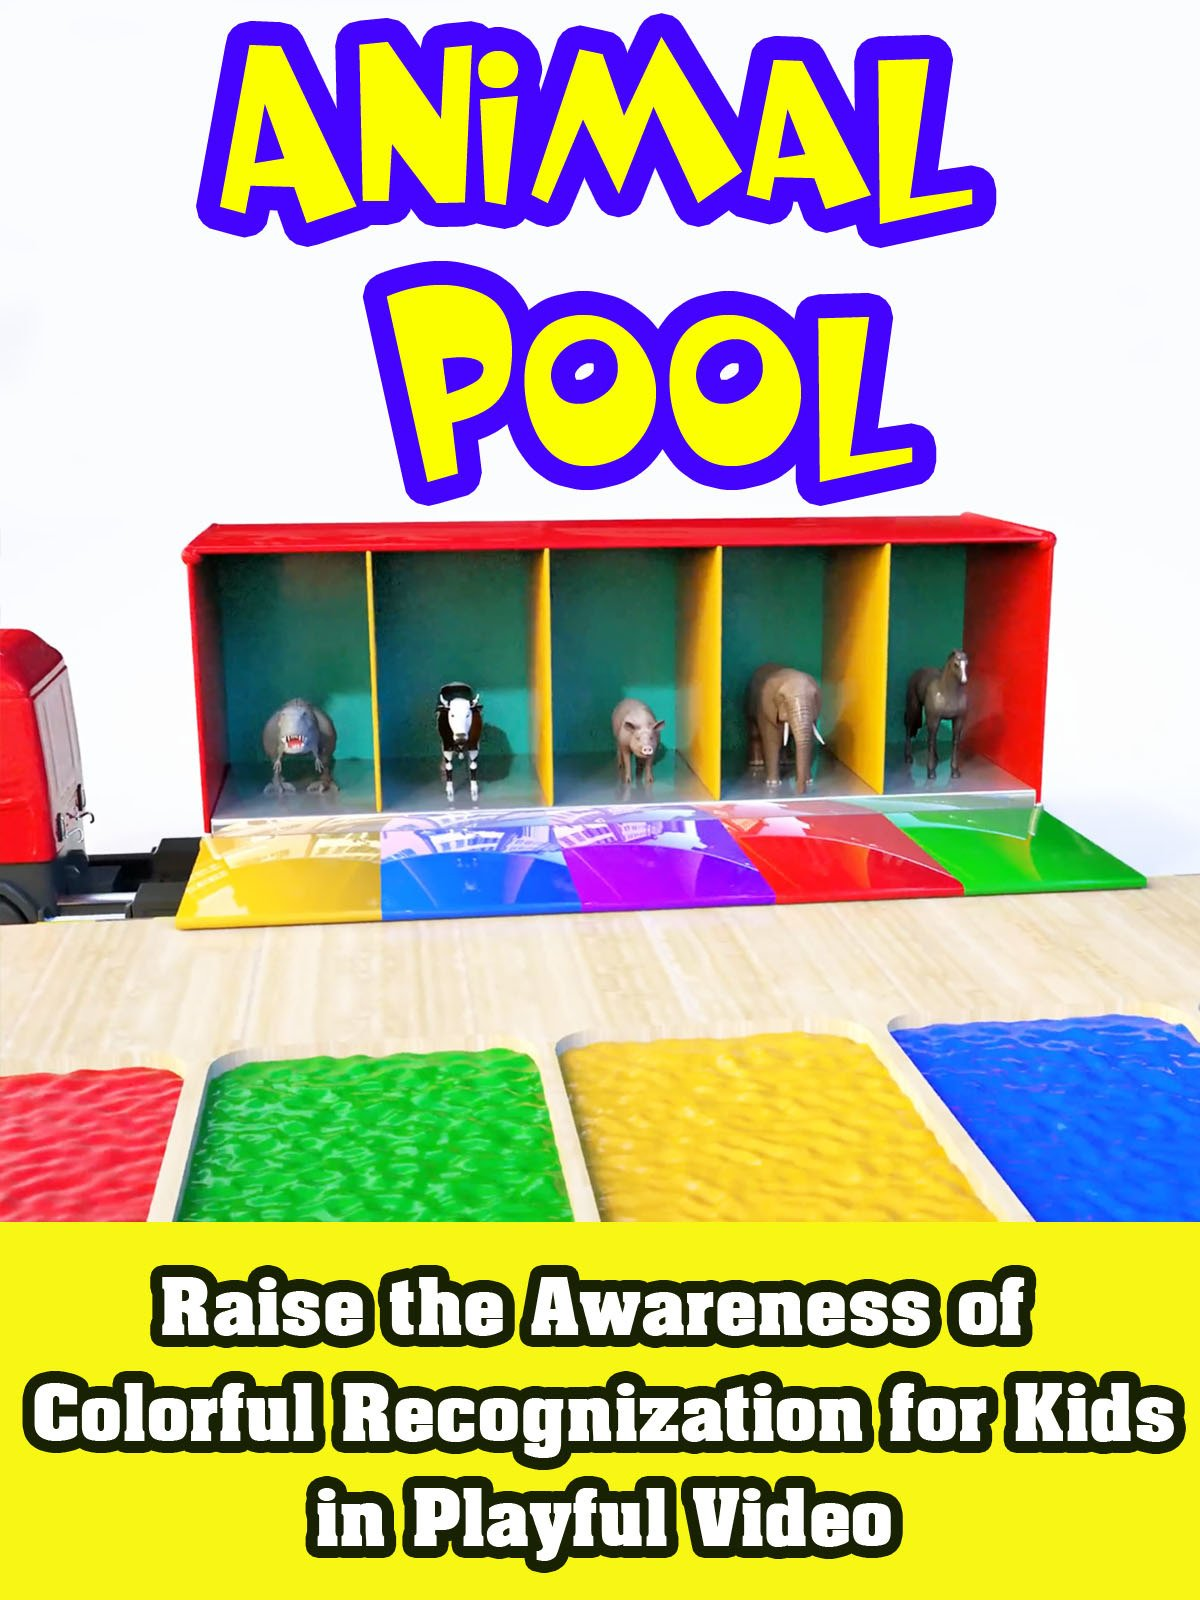 Raise the Awareness of Colorful Recognization for Kids in Playful Video